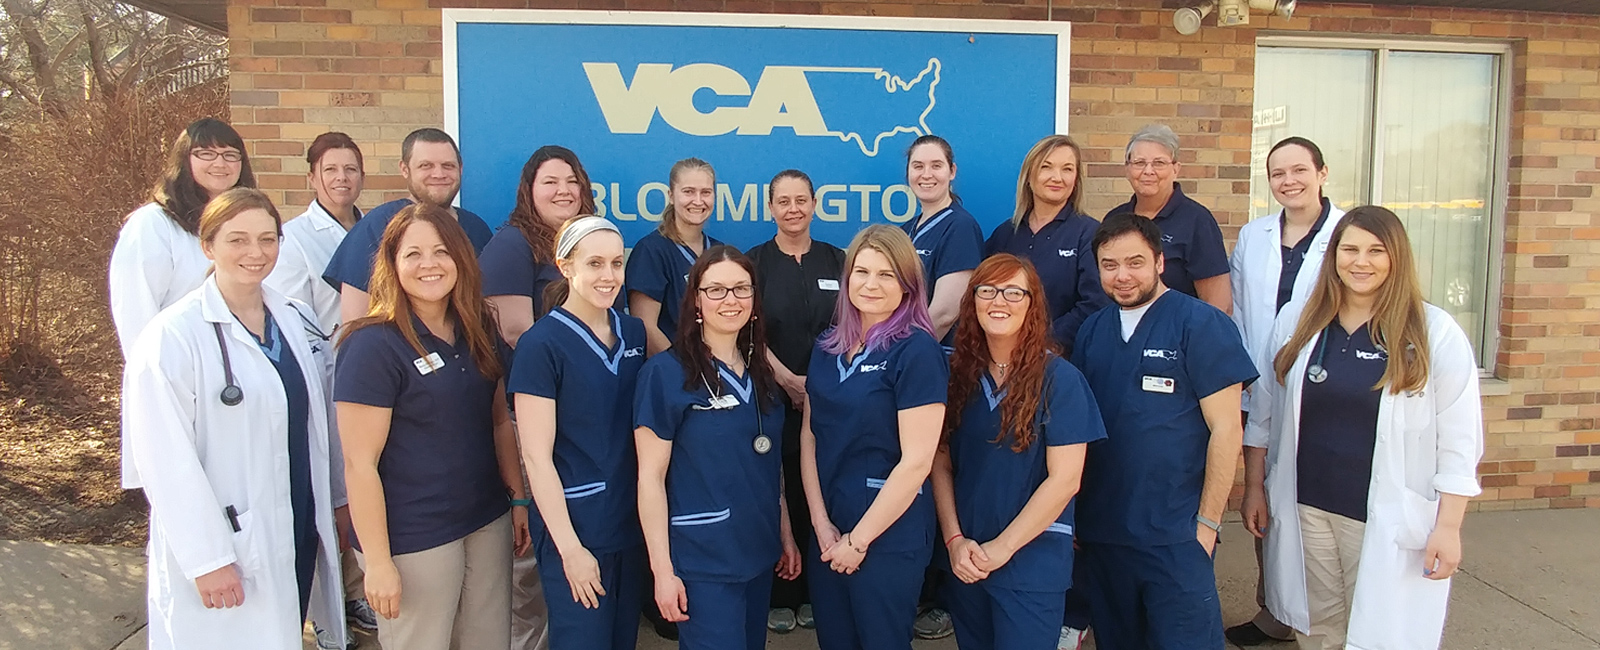 Team Picture of VCA Bloomington Animal Hospital